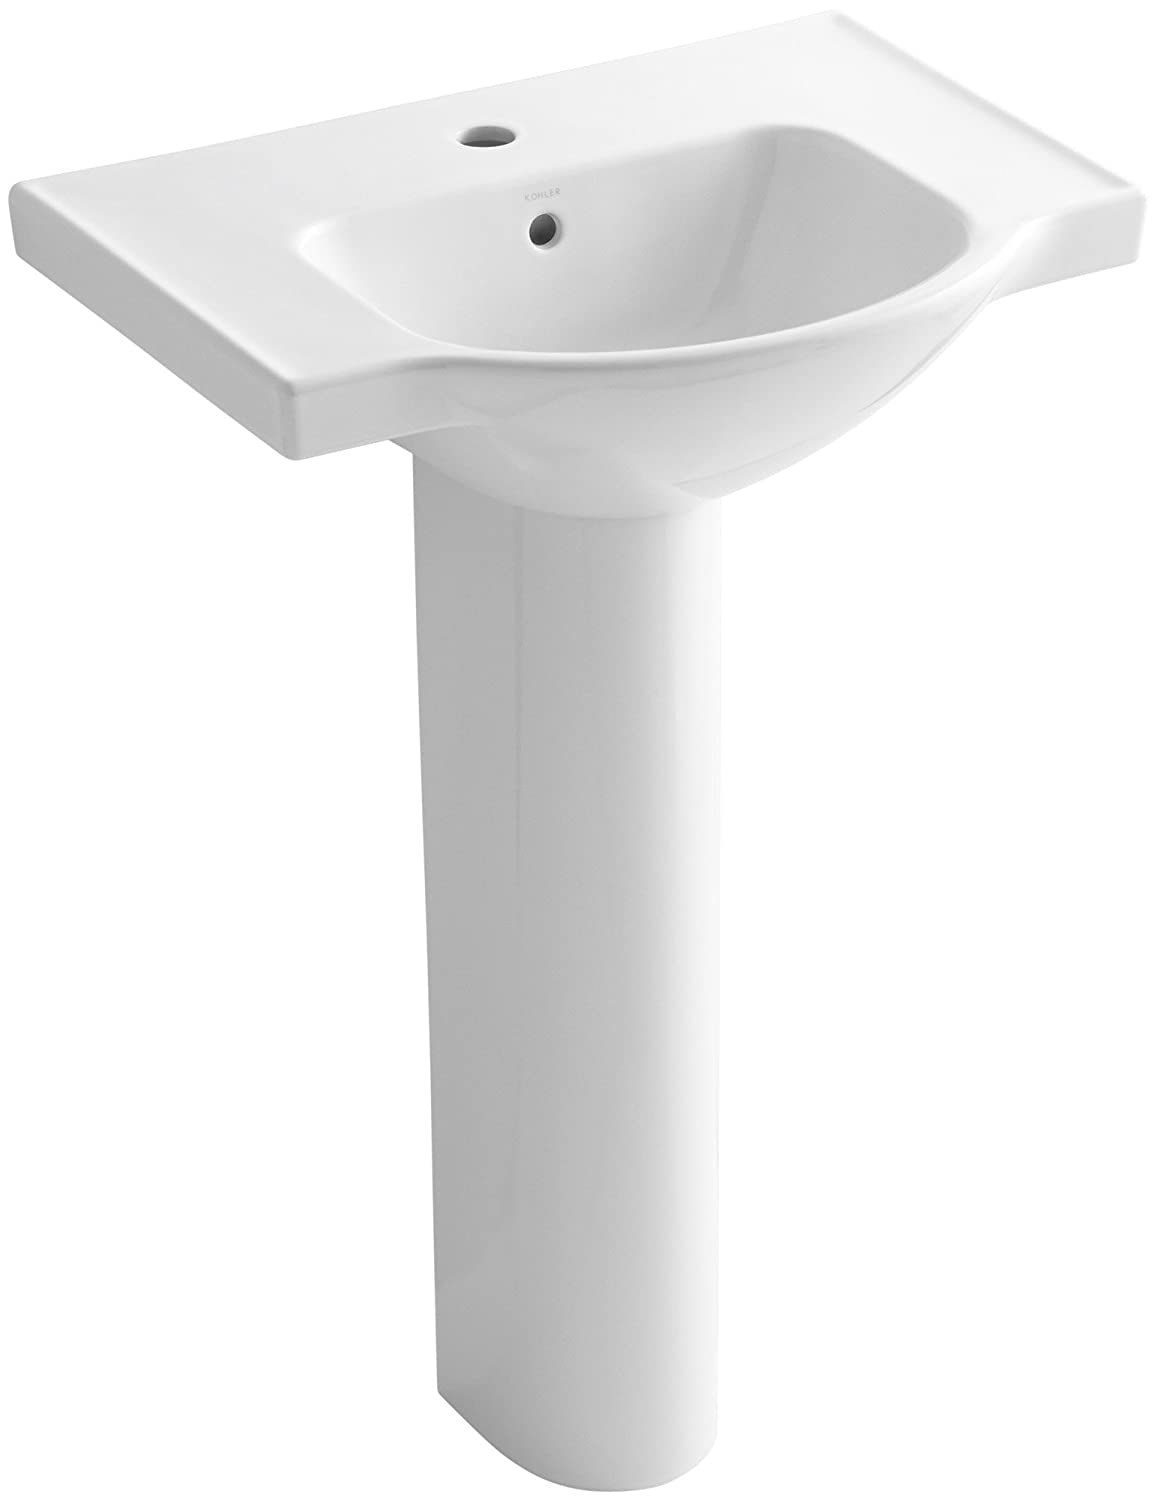 KOHLER K 5266 1 0 Veer Pedestal Bathroom Sink With Single Faucet Hole,  24 Inch, White     Amazon.com